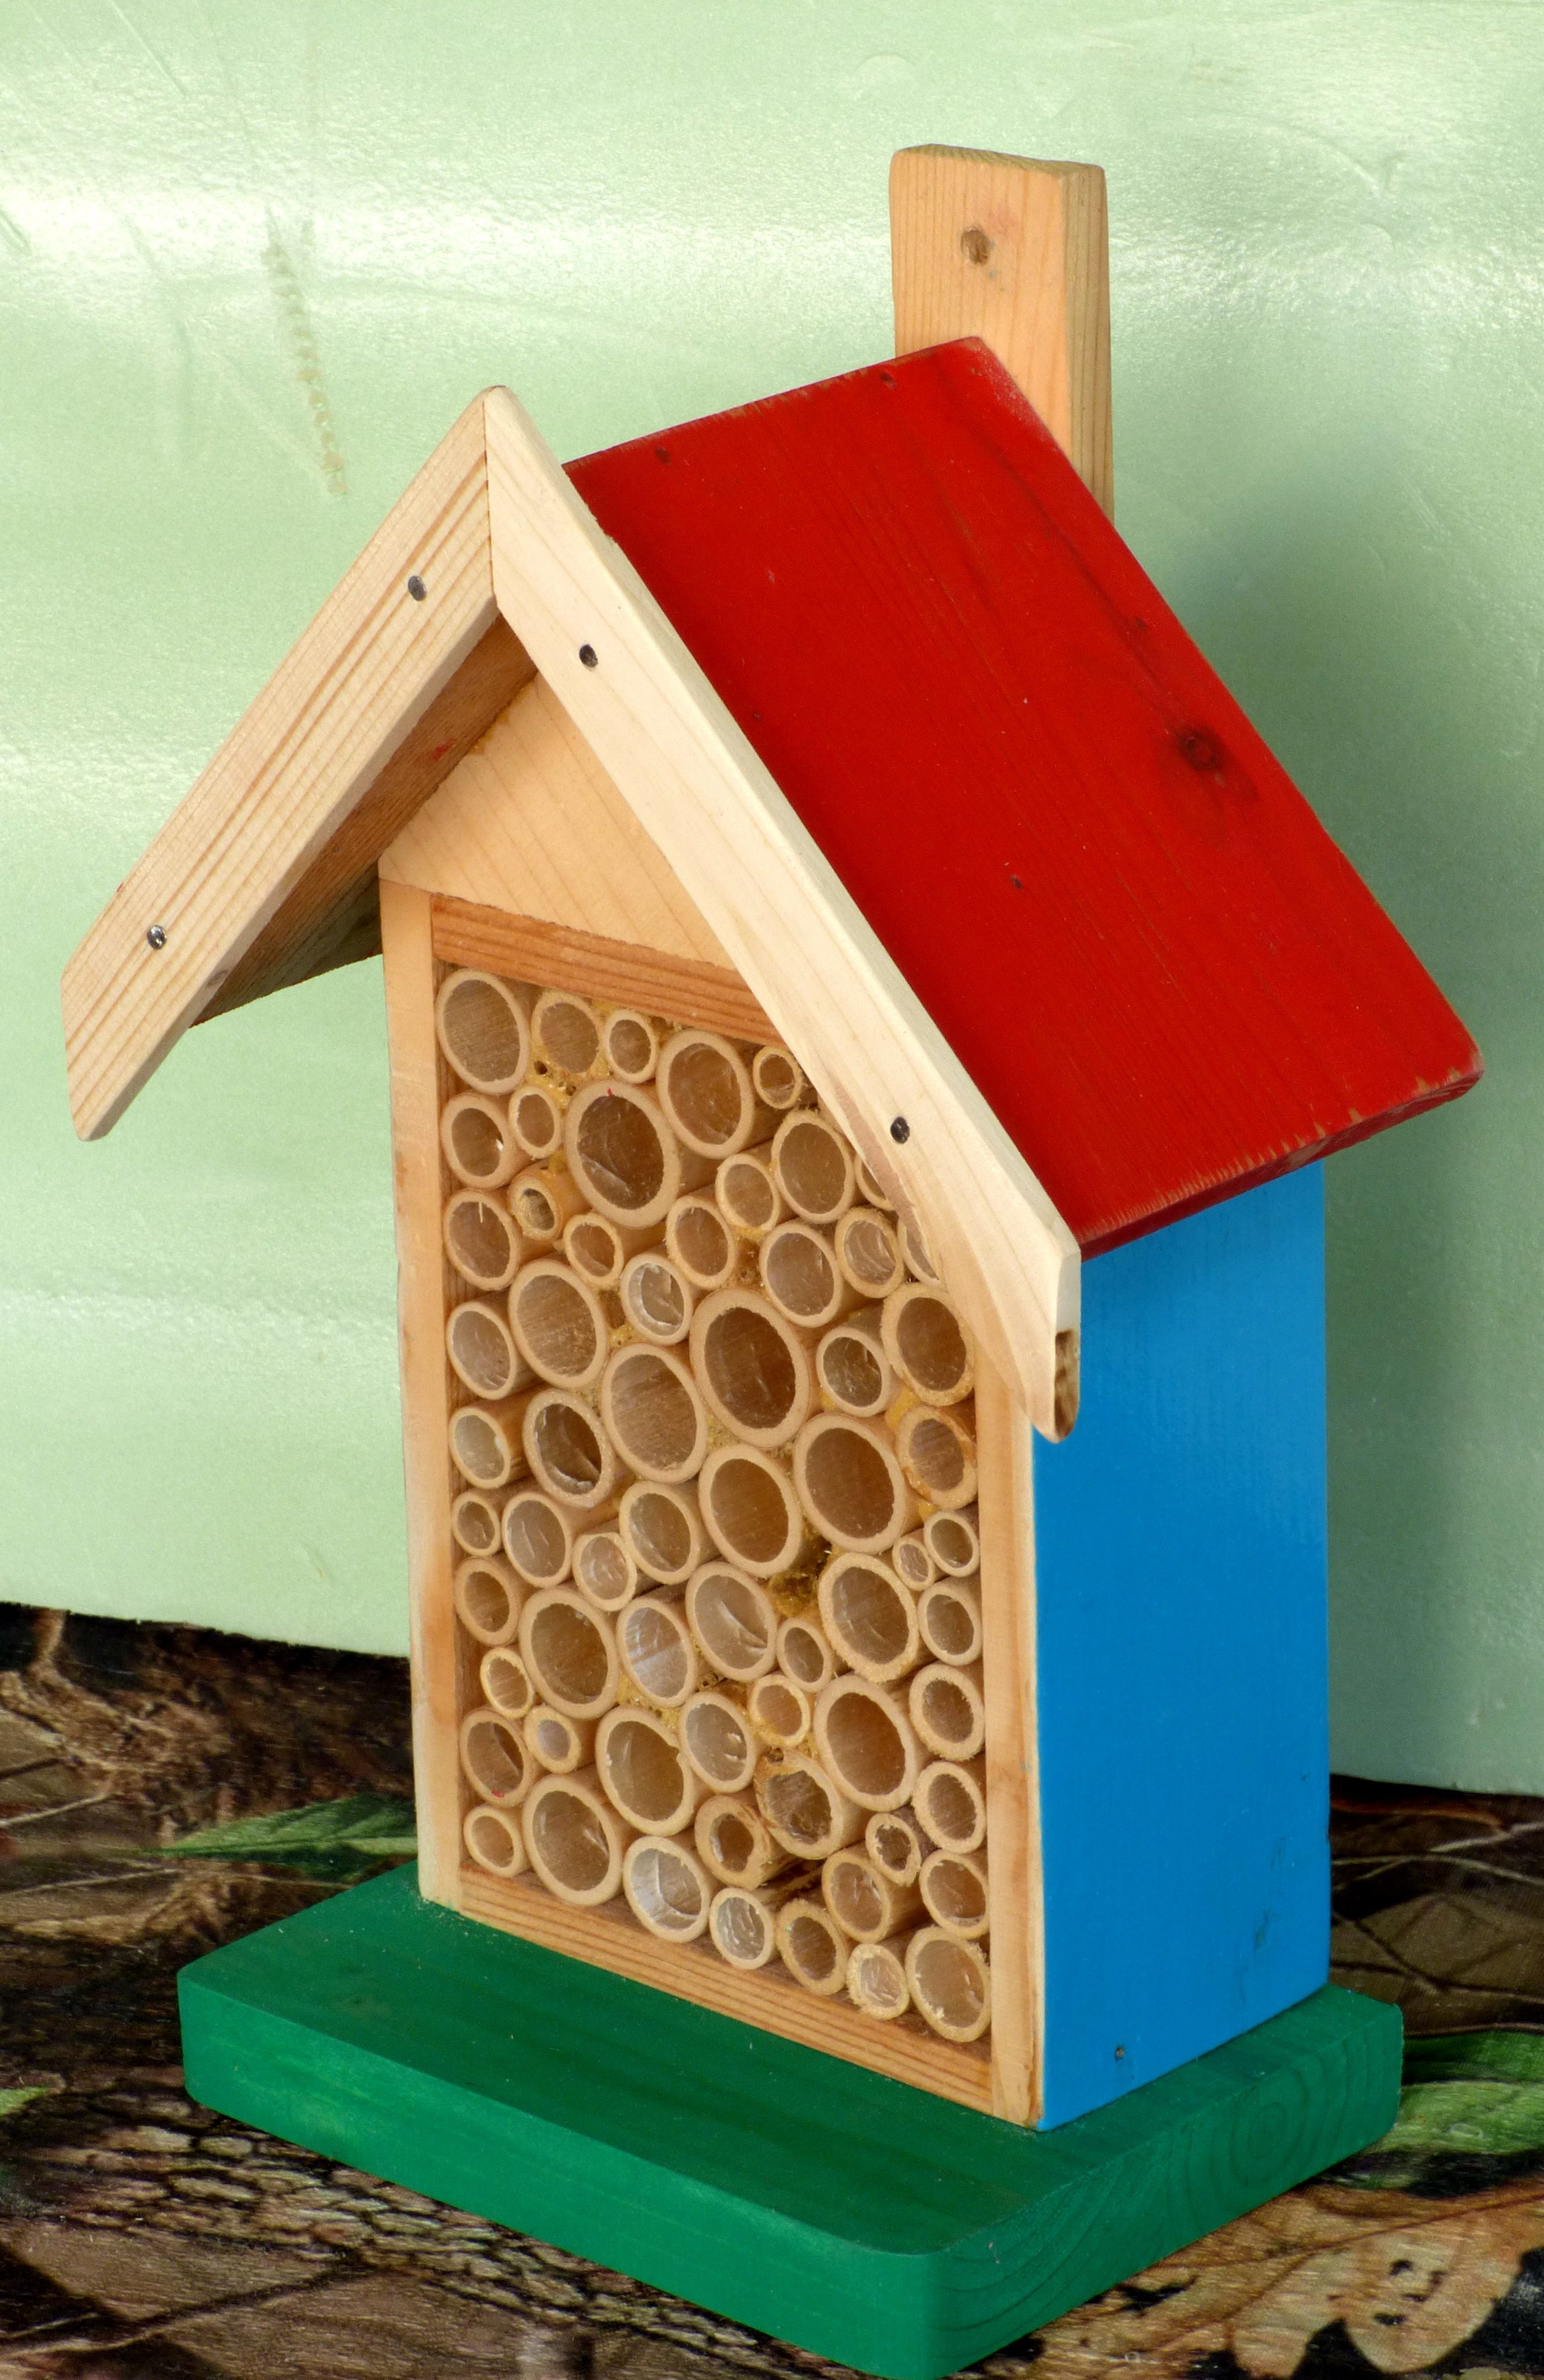 Hotel for insects and bugs to lay eggs. Made by Gönenç